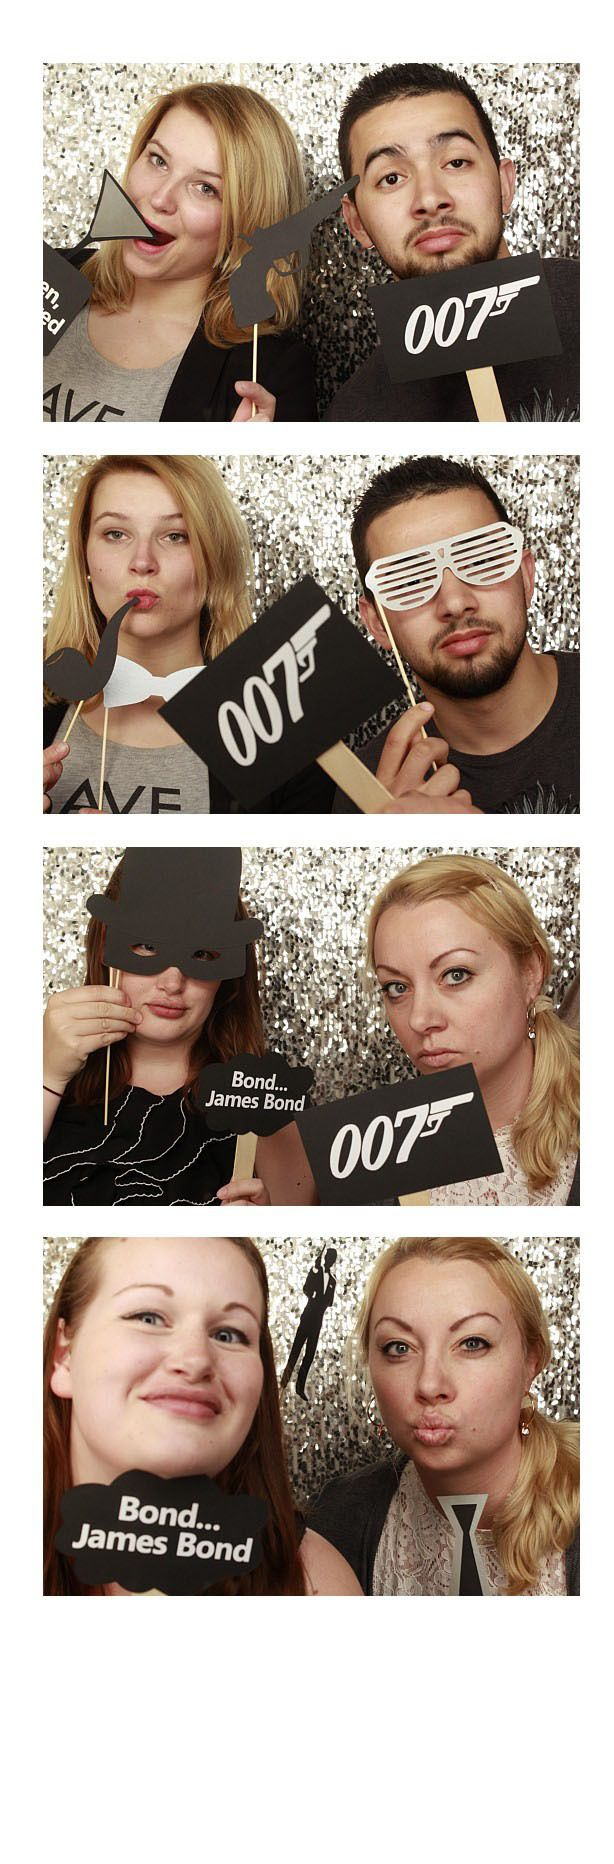 James Bond Photo Booth Props